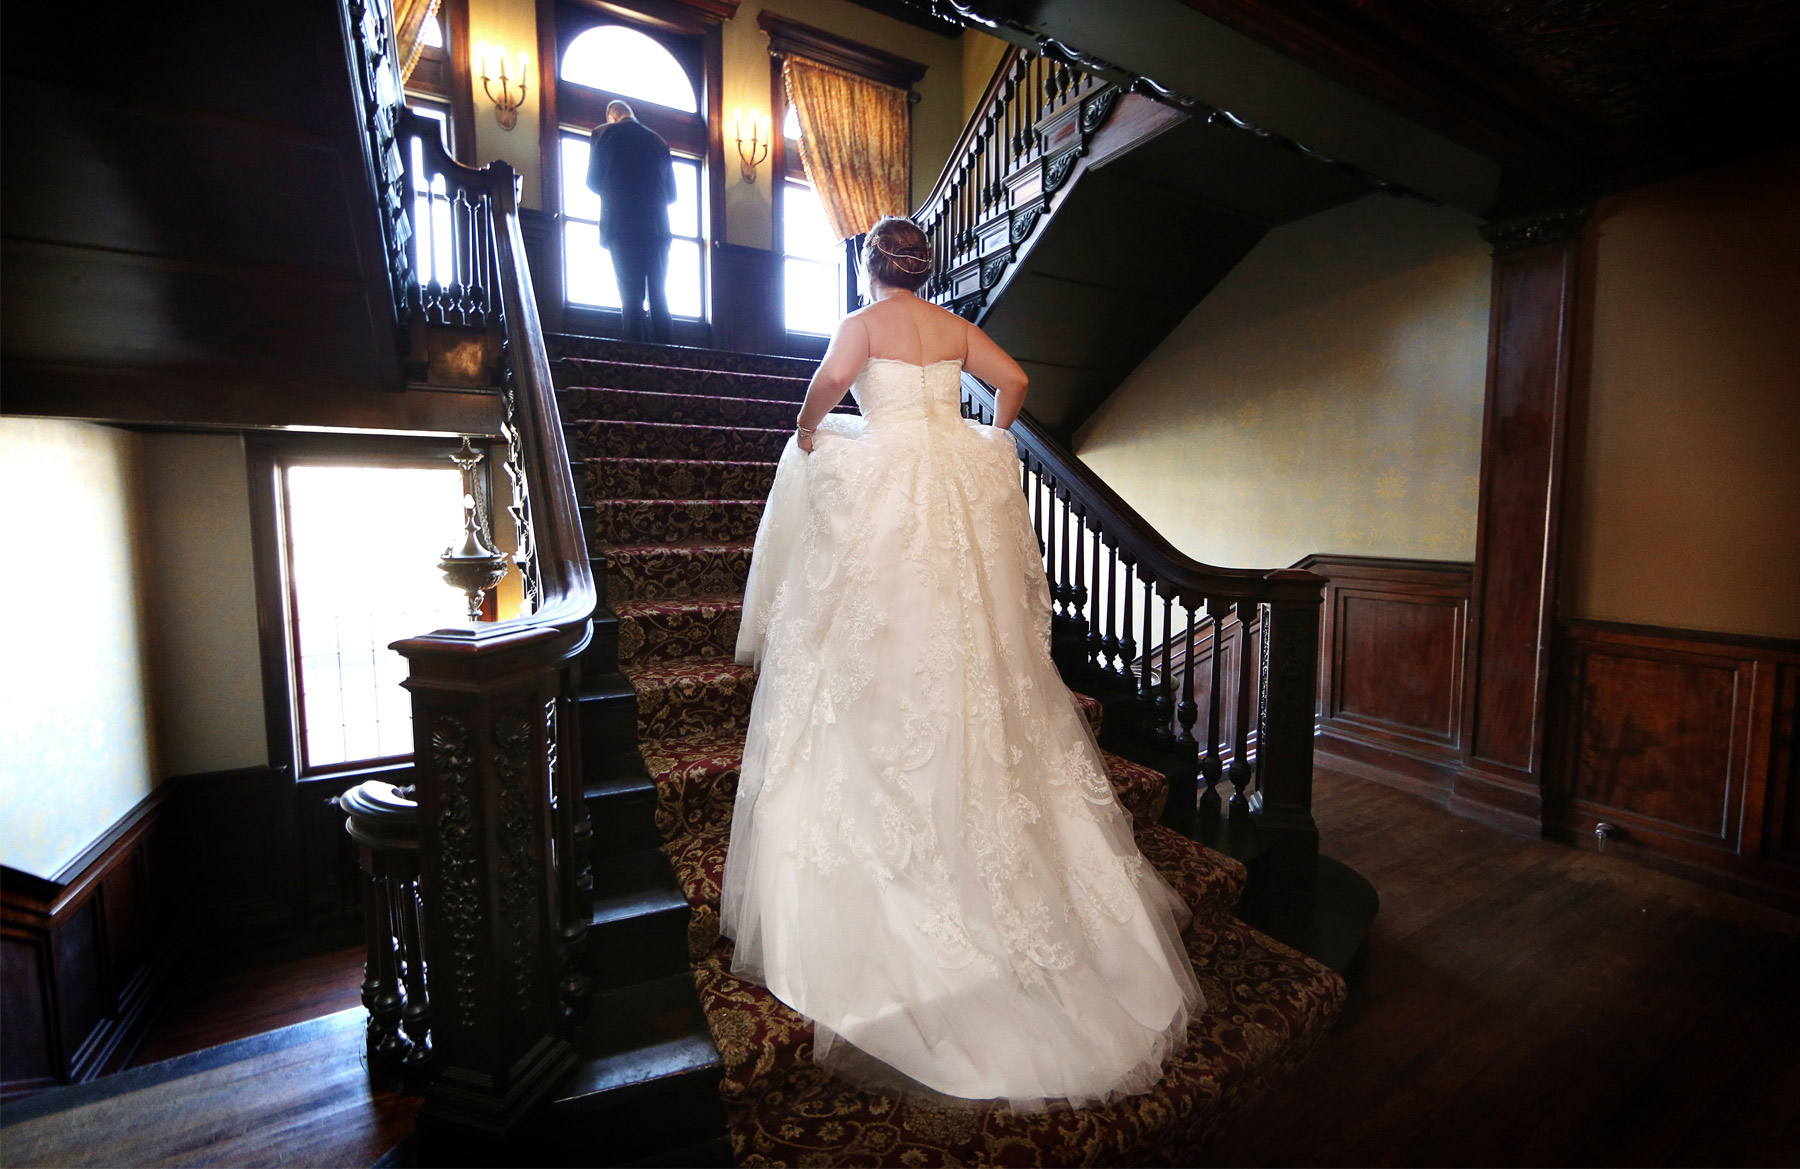 04-Minneapolis-Minnesota-Wedding-Photography-by-Vick-Photography-Semple-Mansion-First-Look-Caitlin-&-Derrick.jpg